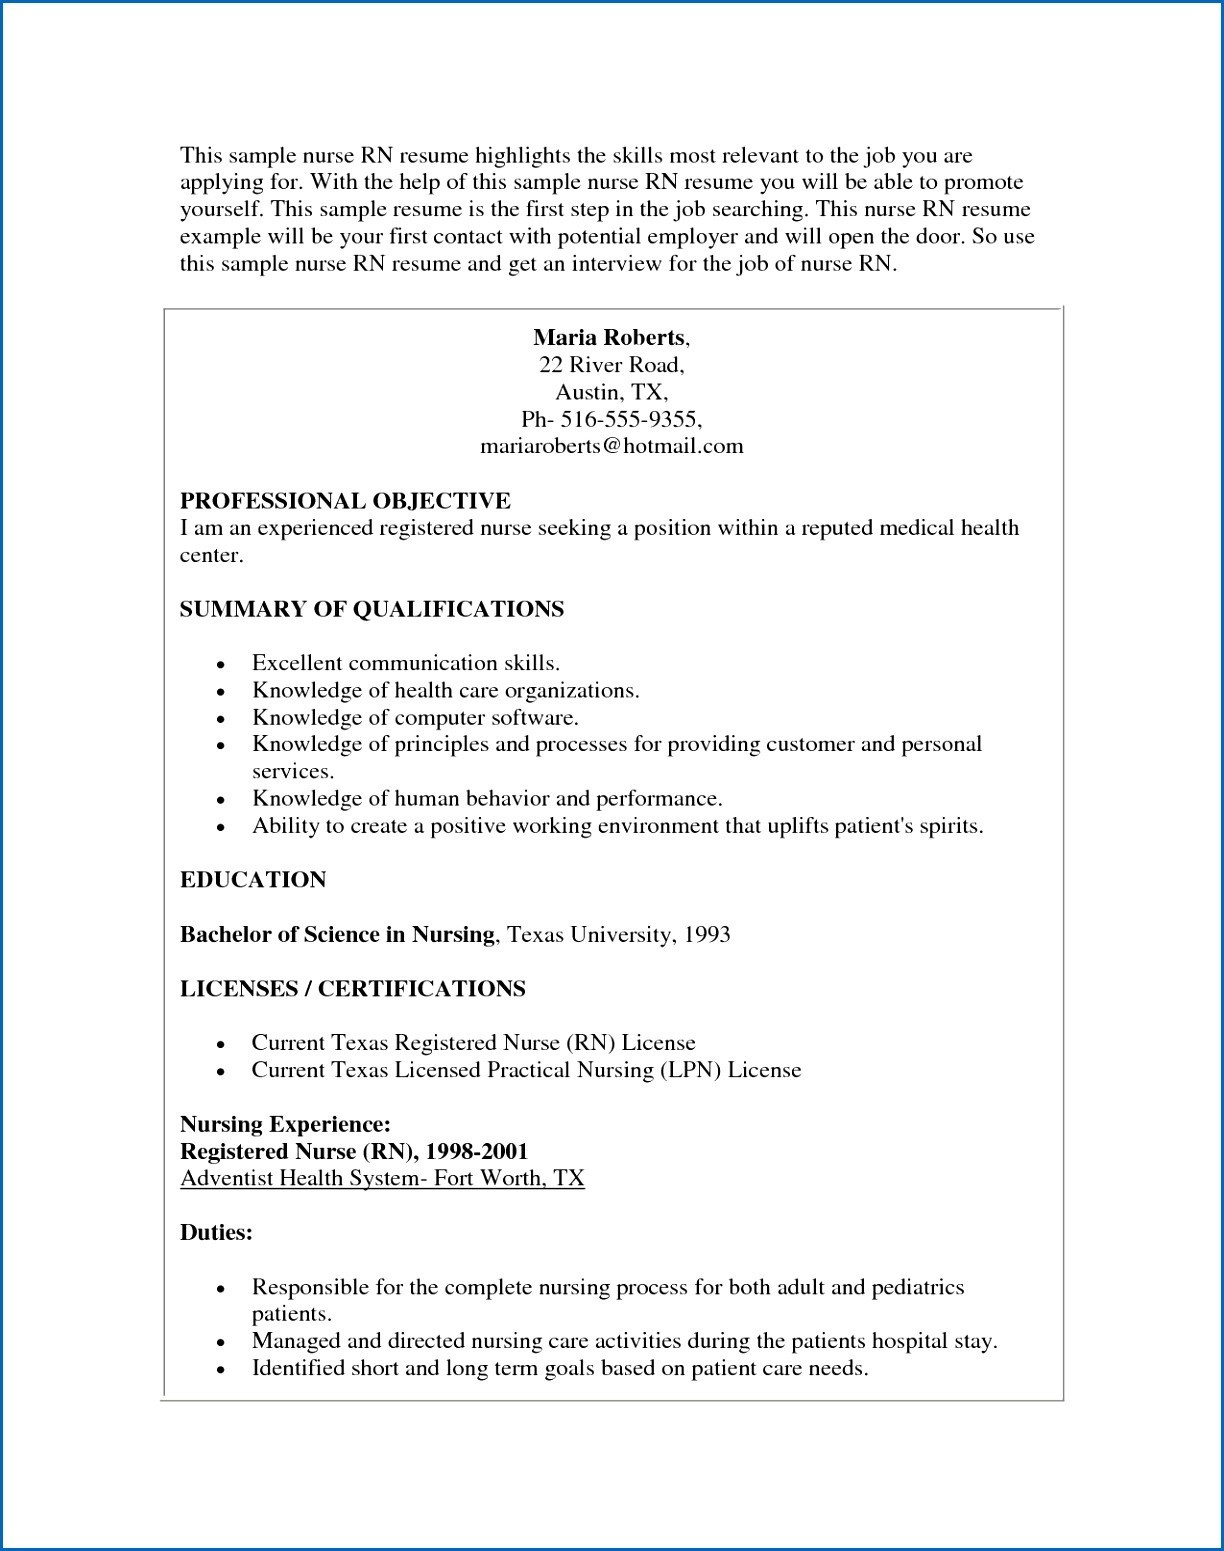 Austin Resume Service - Resume with Lovely Nursing Resume Lovely Rn Bsn Resume Awesome